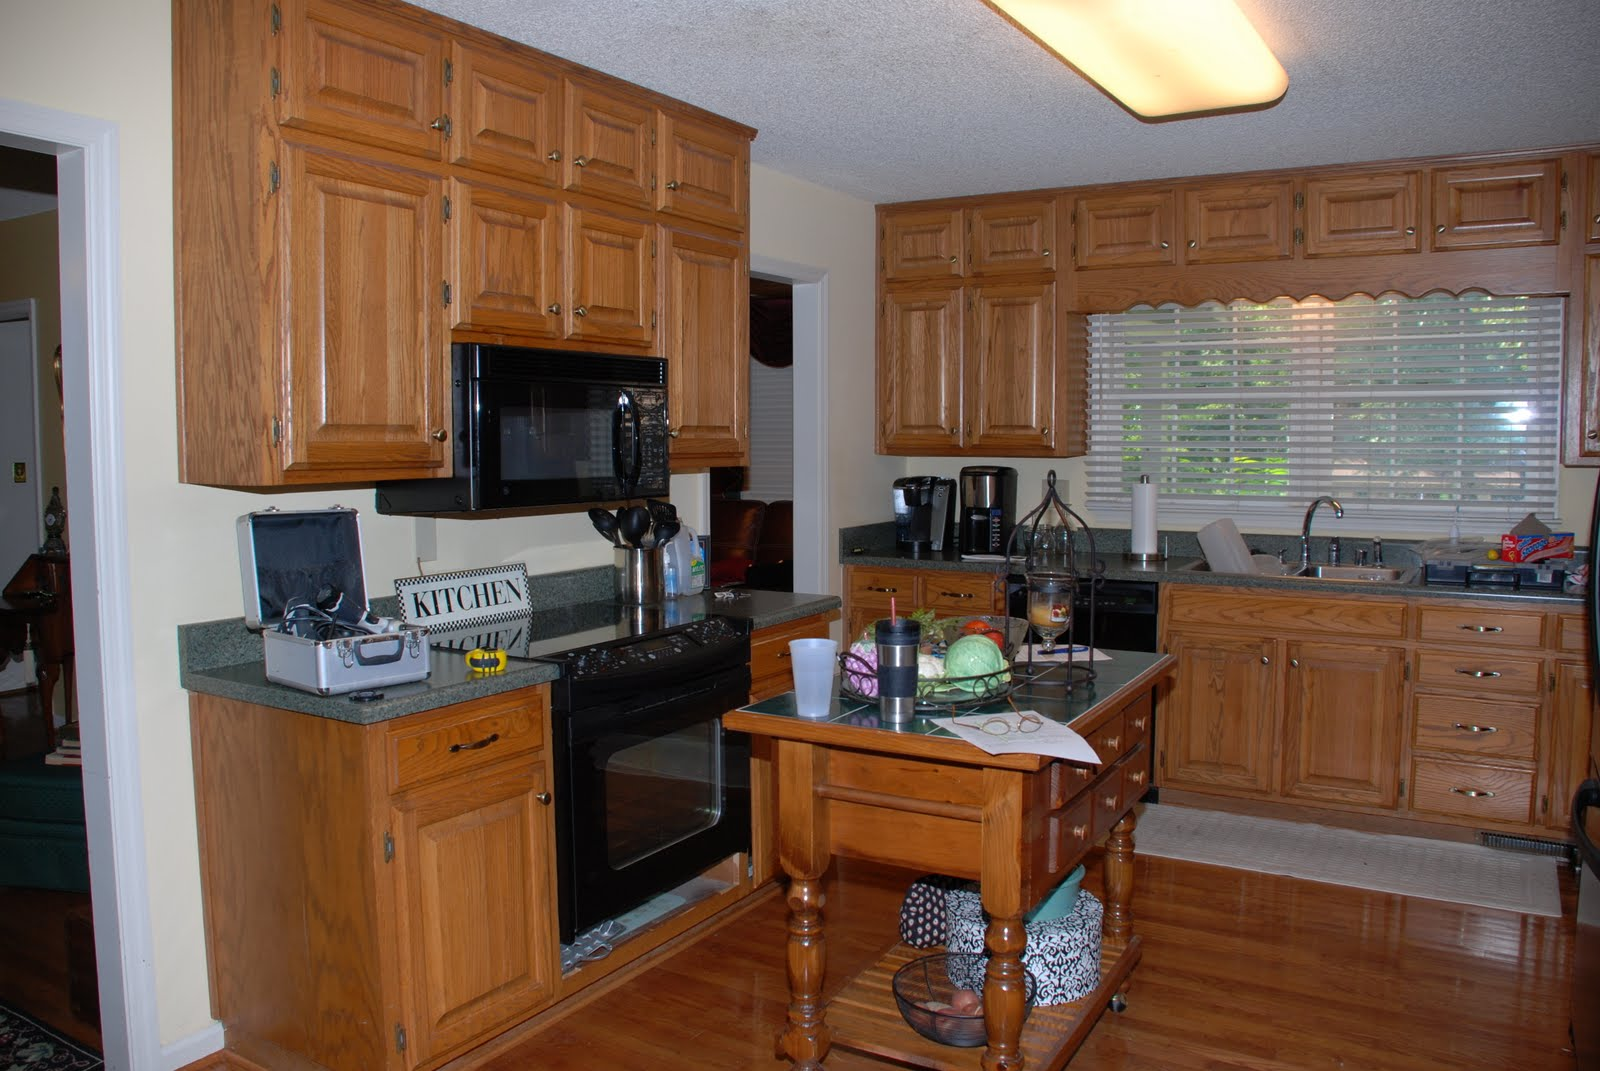 Kitchen armoire cabinets Photo - 5